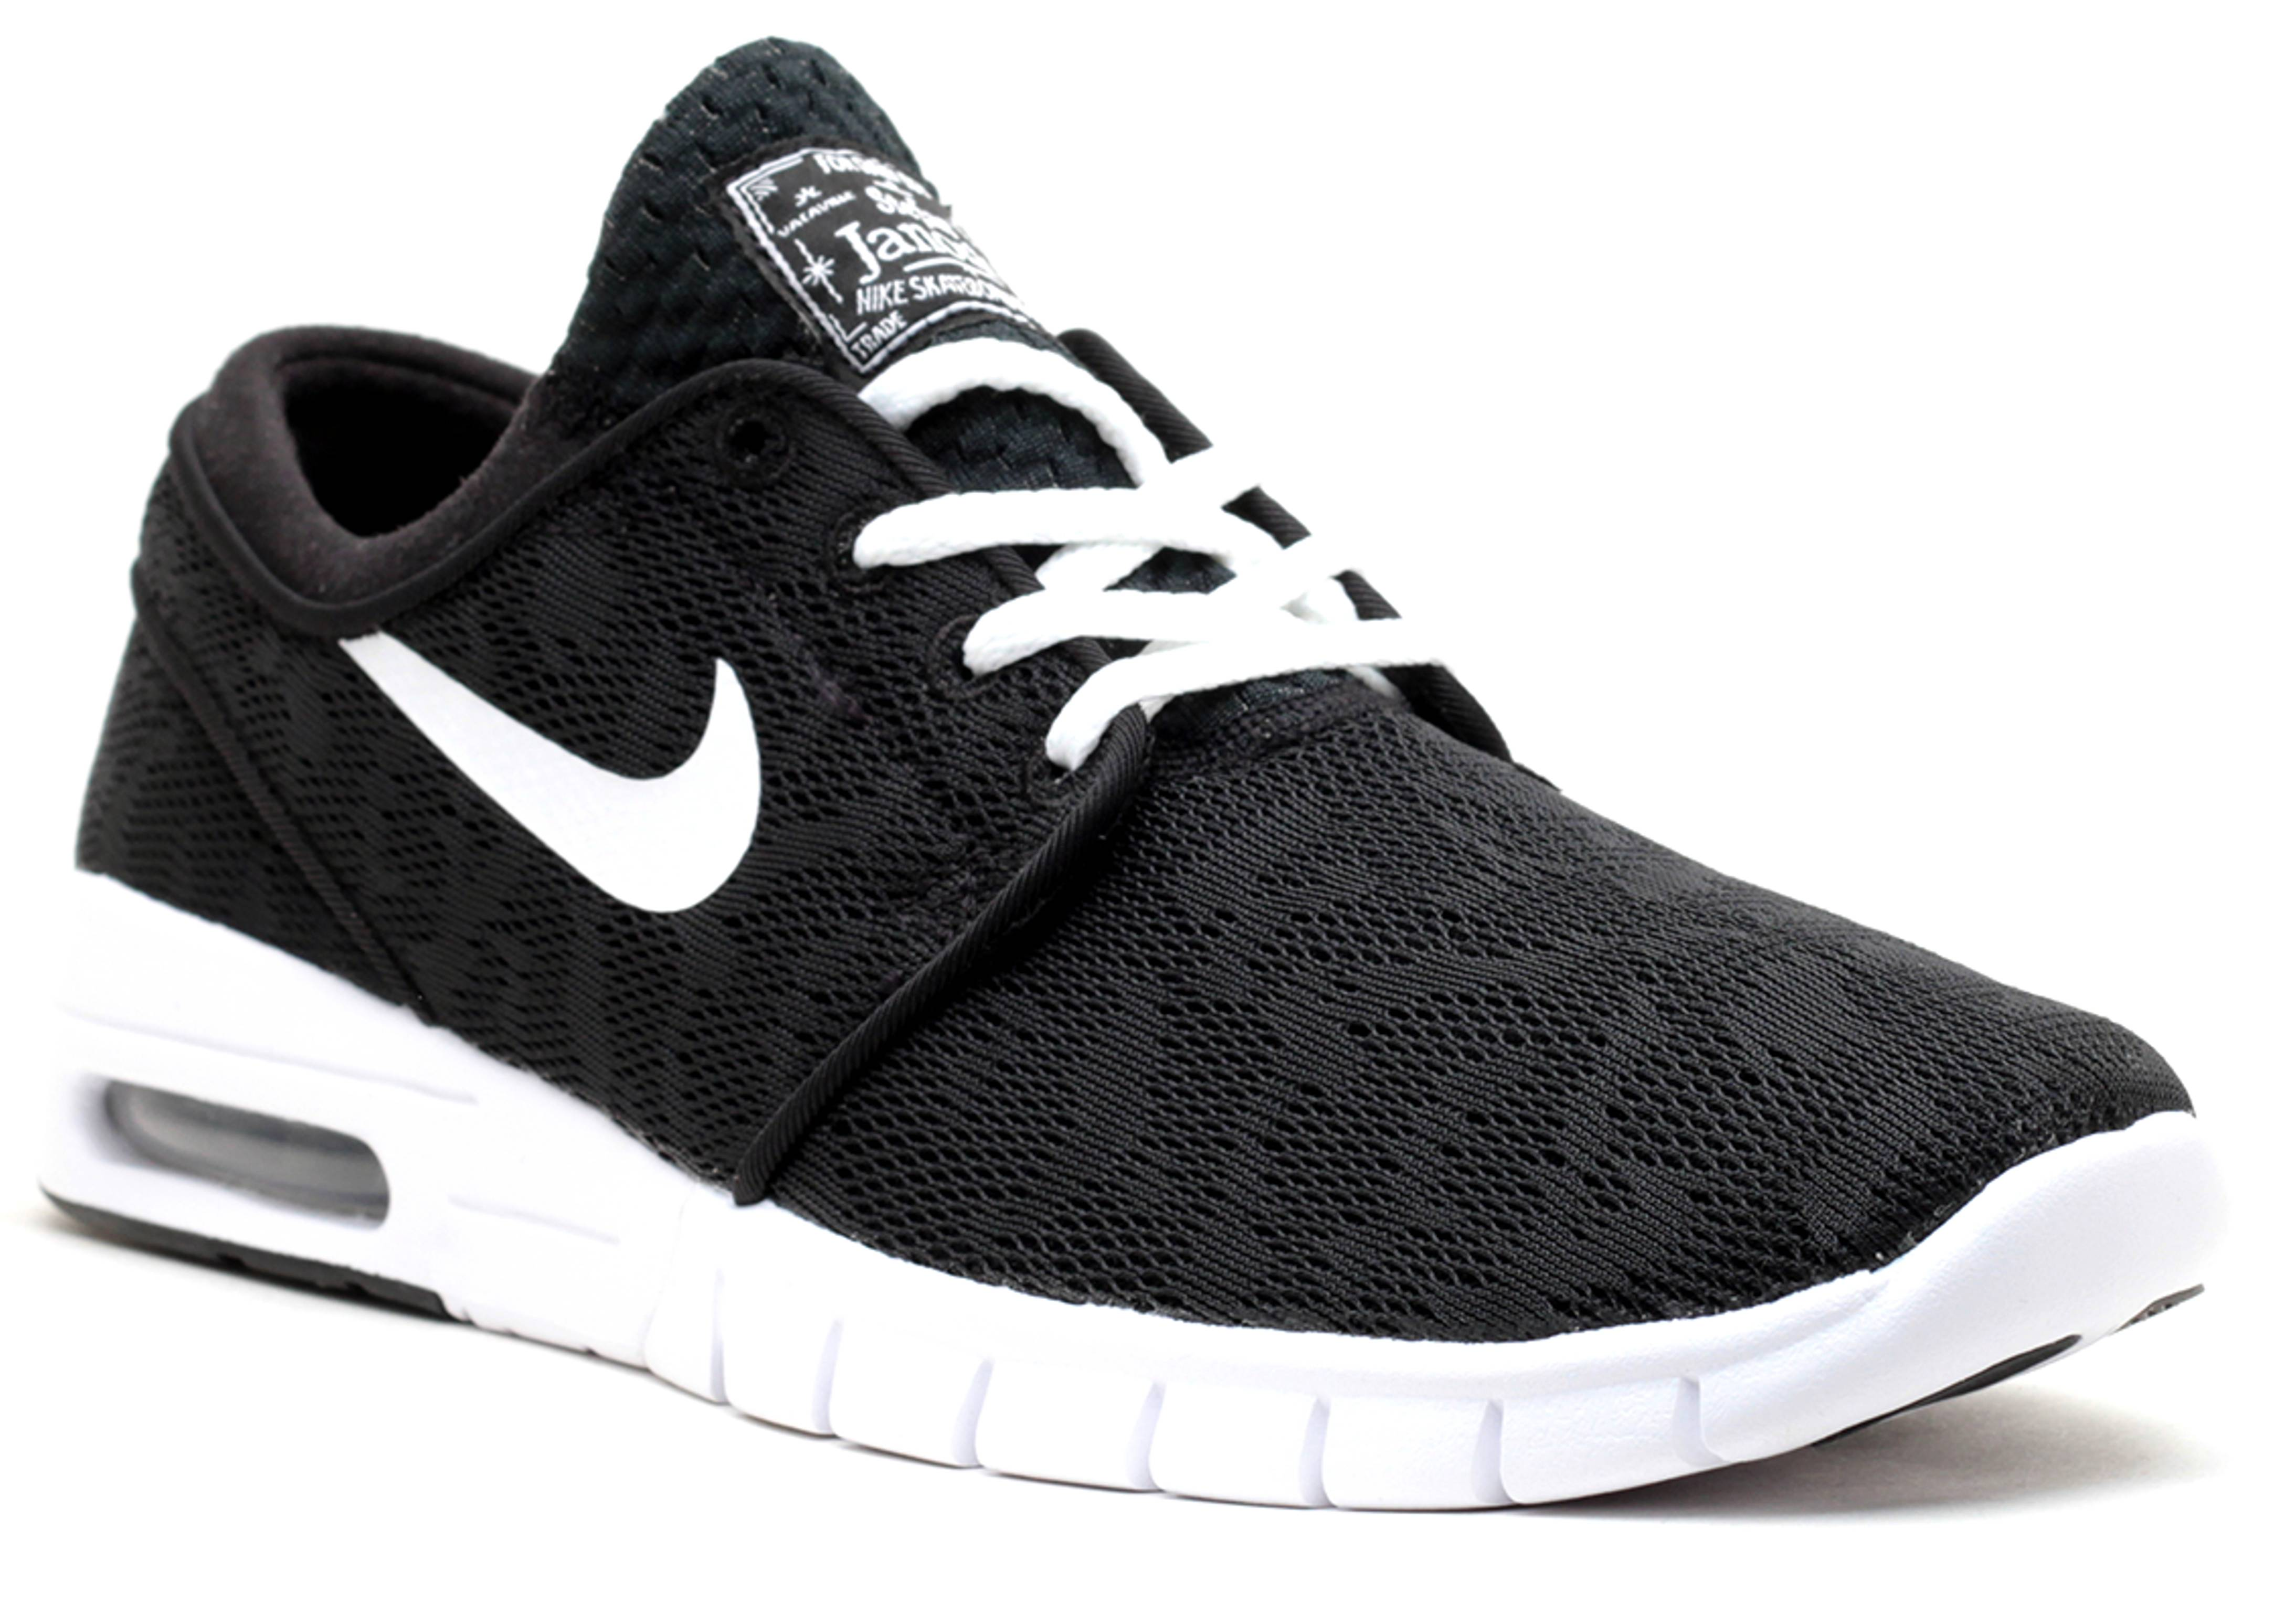 stefan janoski max nike 631303 010 black white. Black Bedroom Furniture Sets. Home Design Ideas